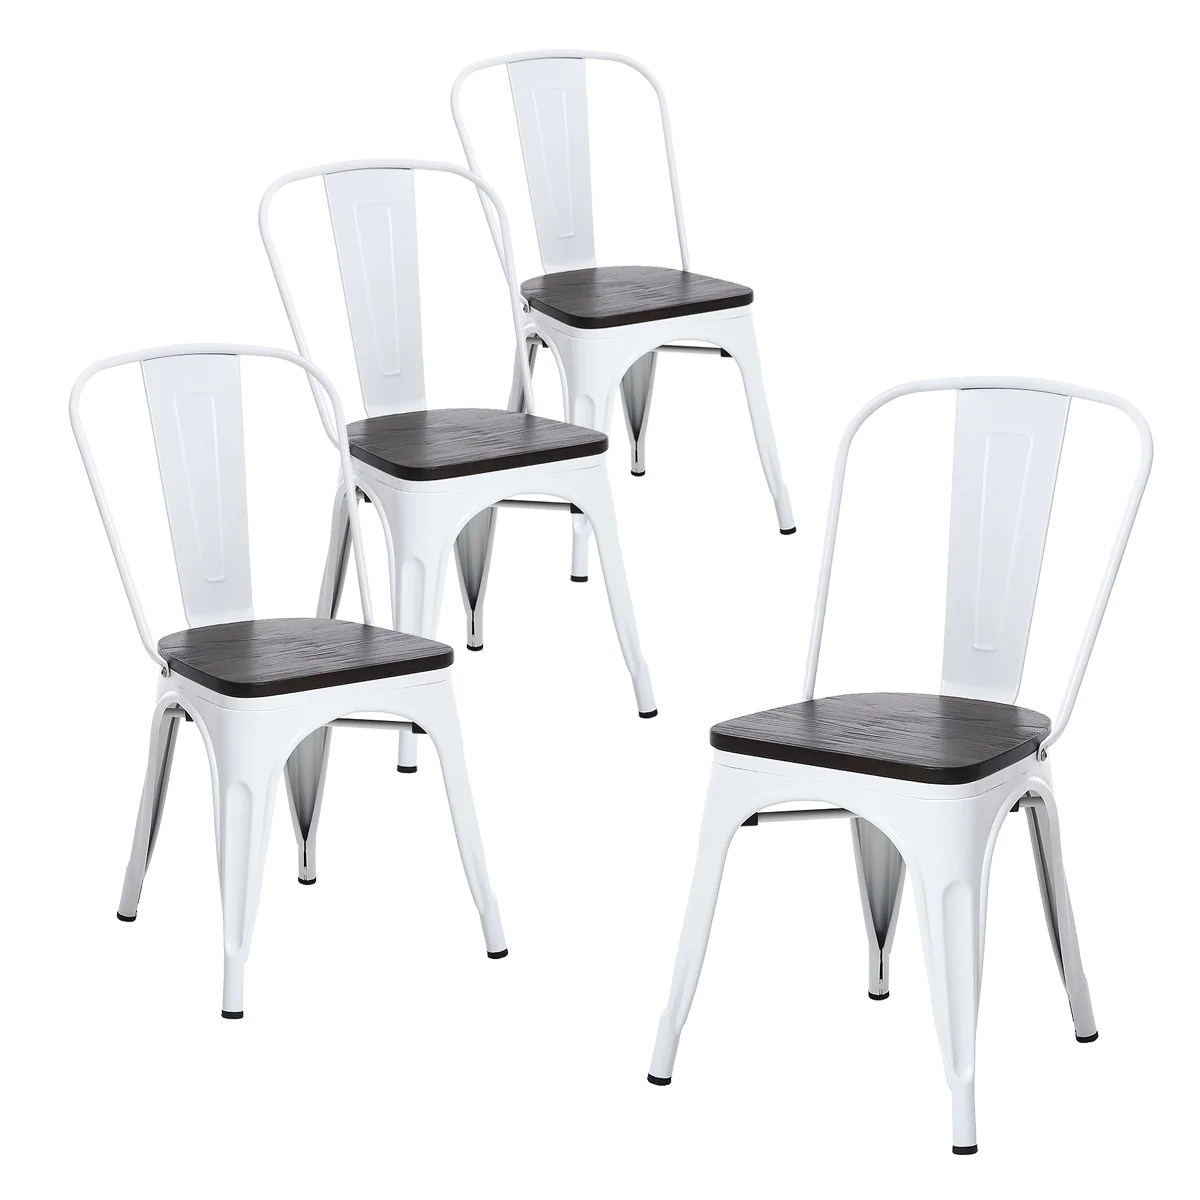 White Wooden Dining Chairs Buschman Set Of 4 Matte White Wooden Seat Metal Dining Chairs Indoor Outdoor And Stackable